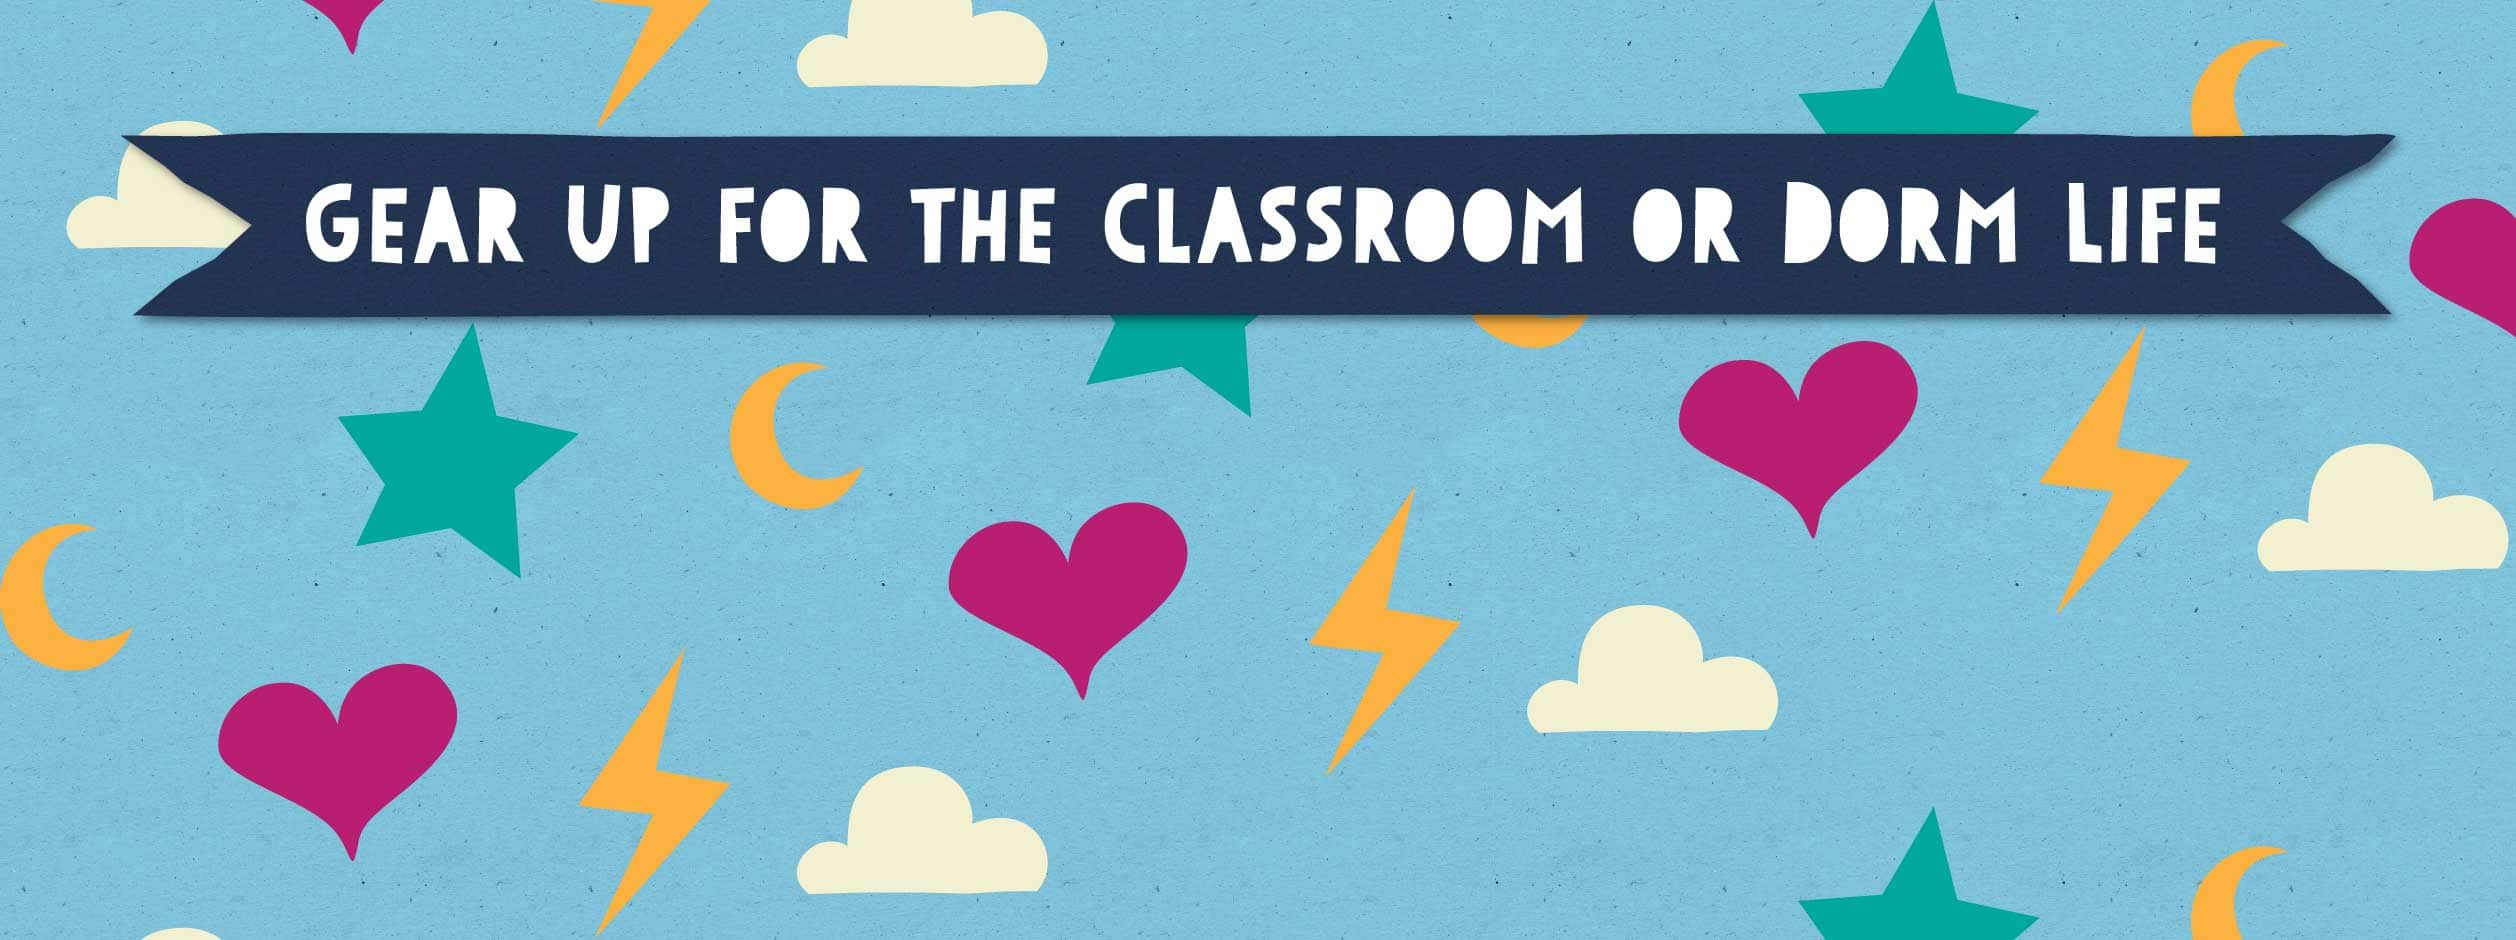 Gear up for classroom or dorm life